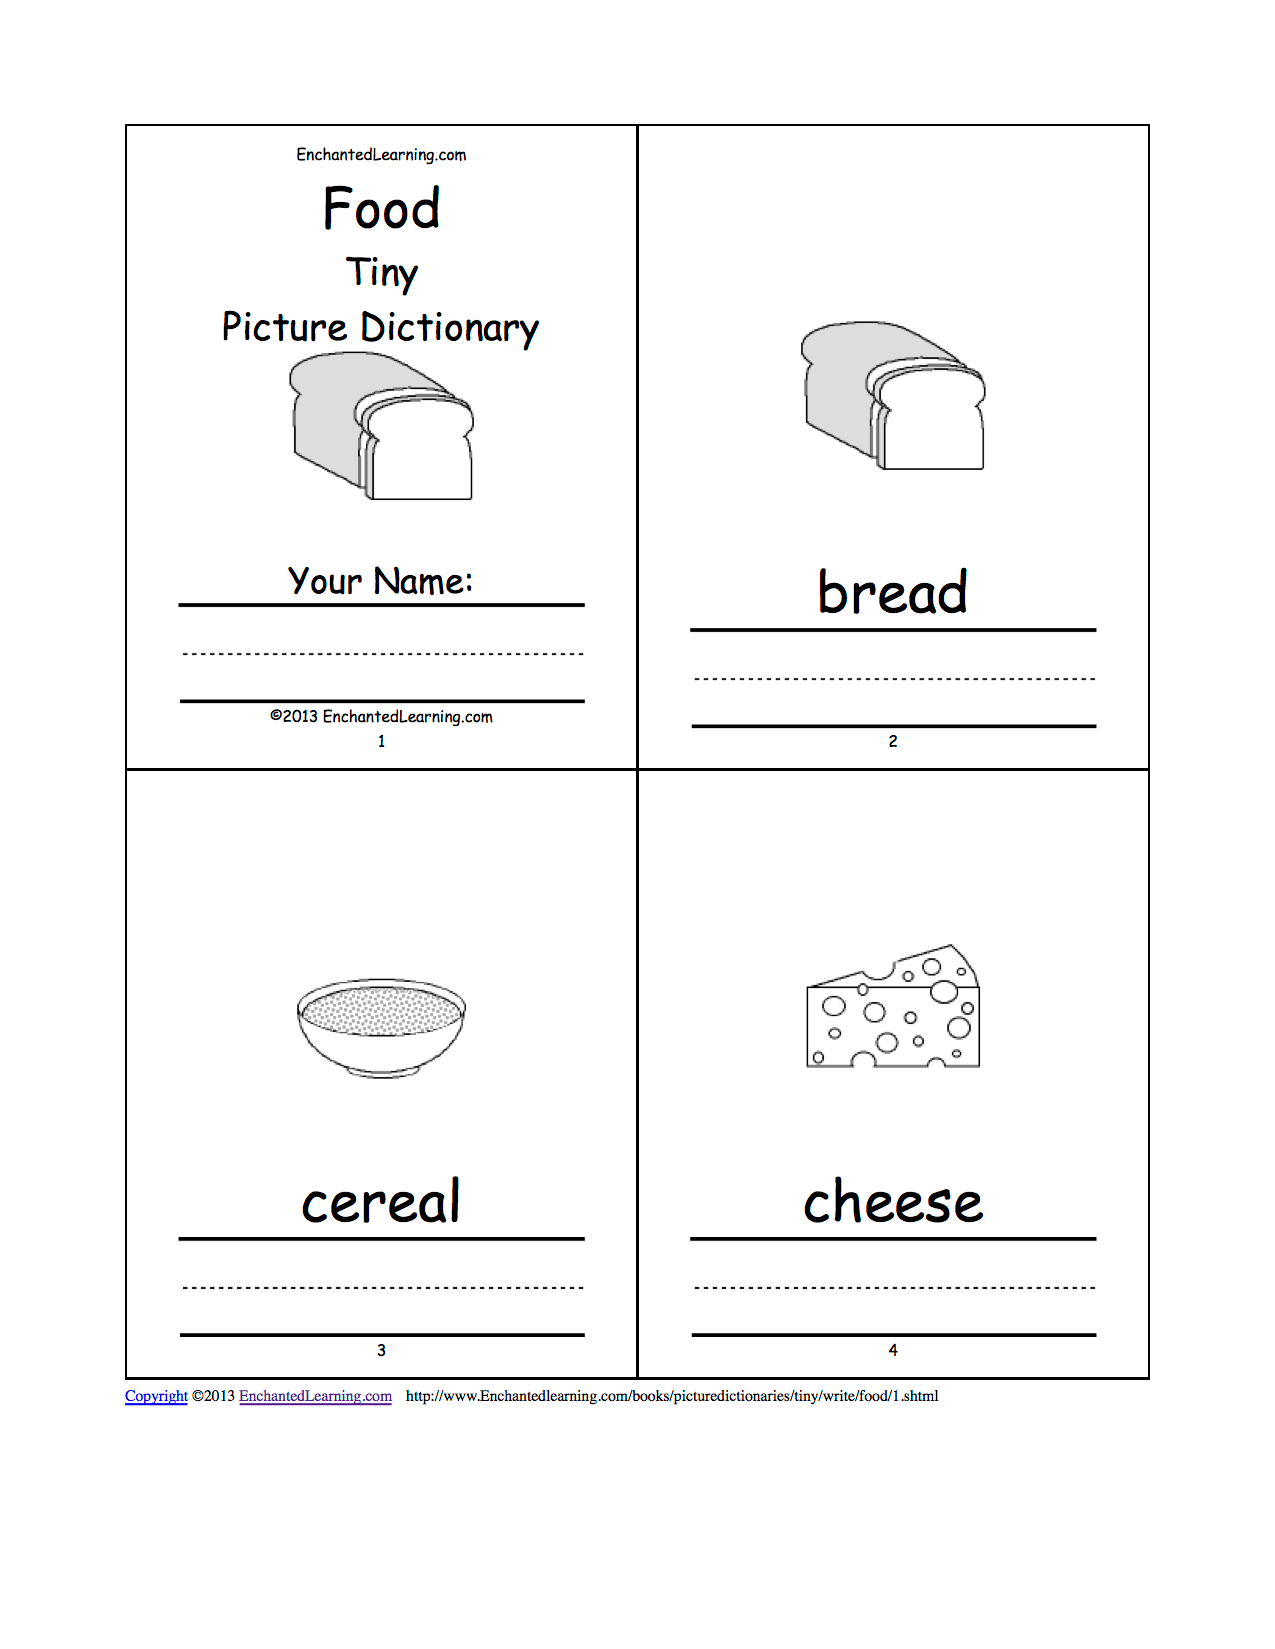 Food Tiny Picture Dictionary